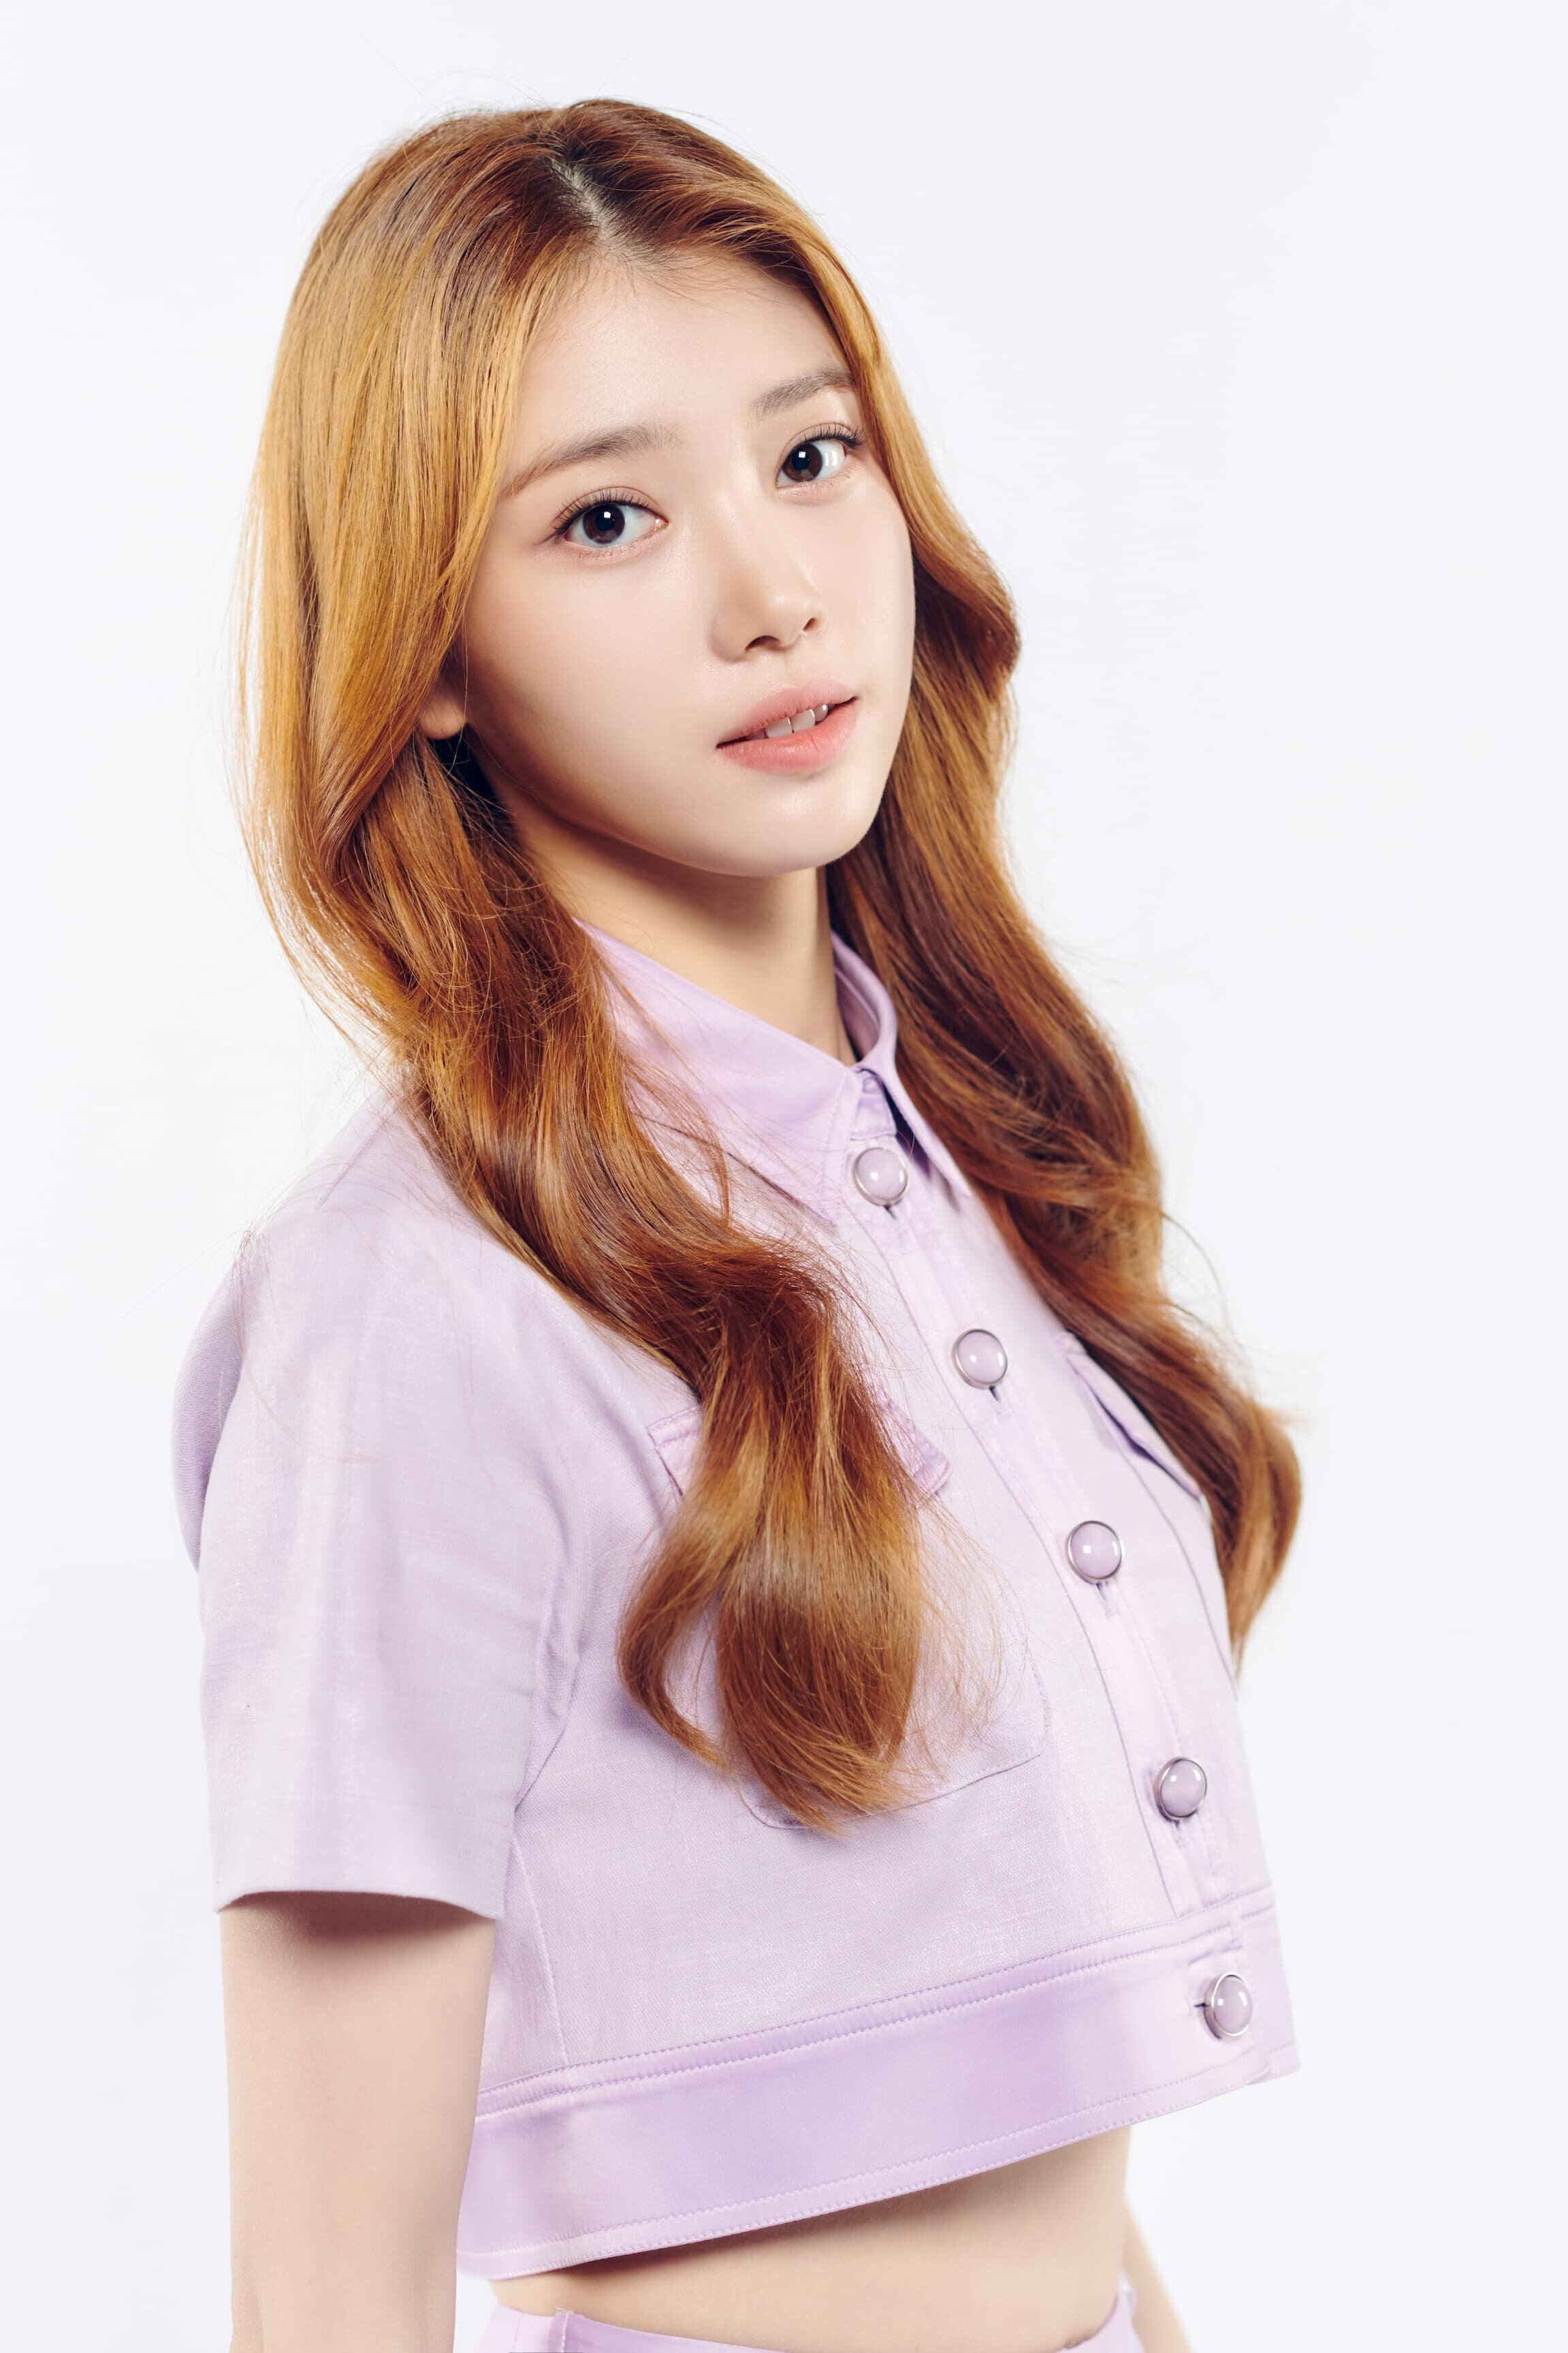 Girls Planet 999 - C Group Introduction Profile Photos - Shen Xiao Ting    Kpopping